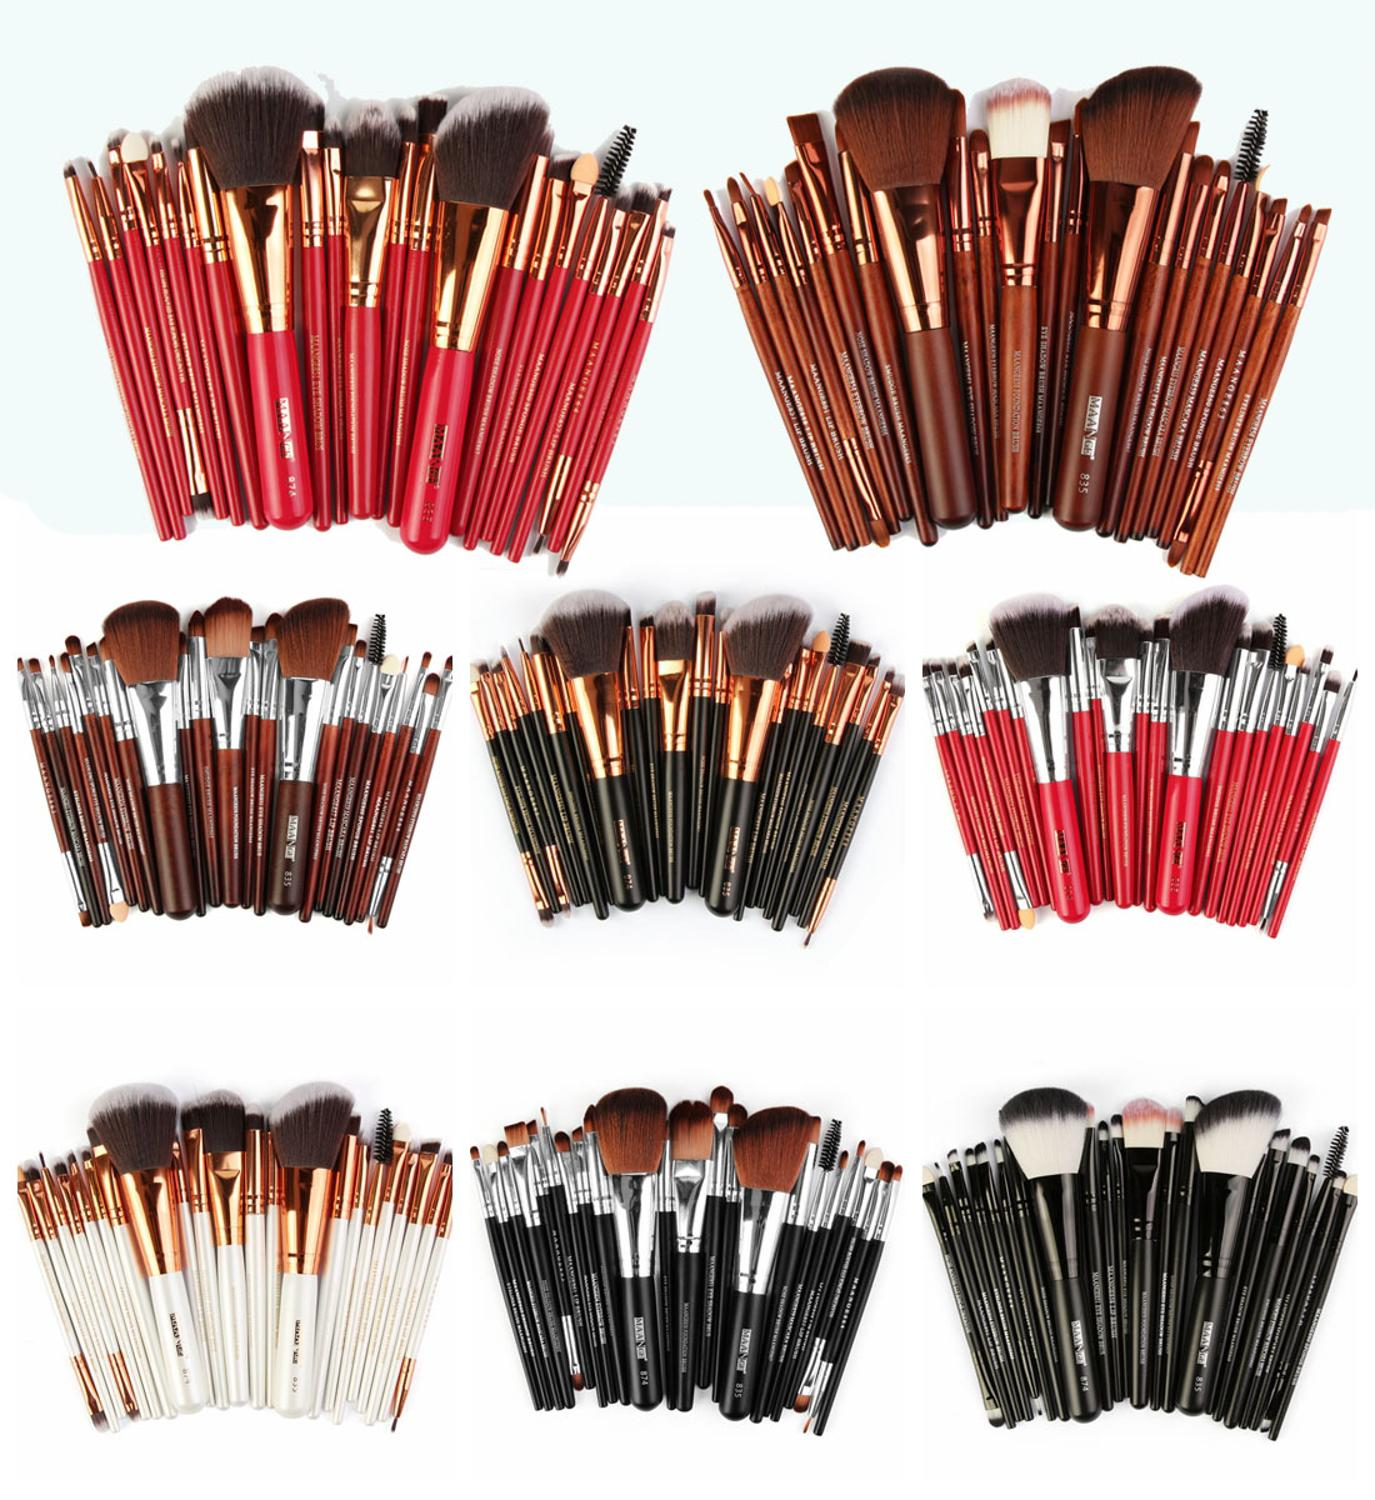 MAANGE 22pcs Professional Makeup Brushes Kit Wooden Handle Beauty Cosmetic Tools pinceaux maquillage